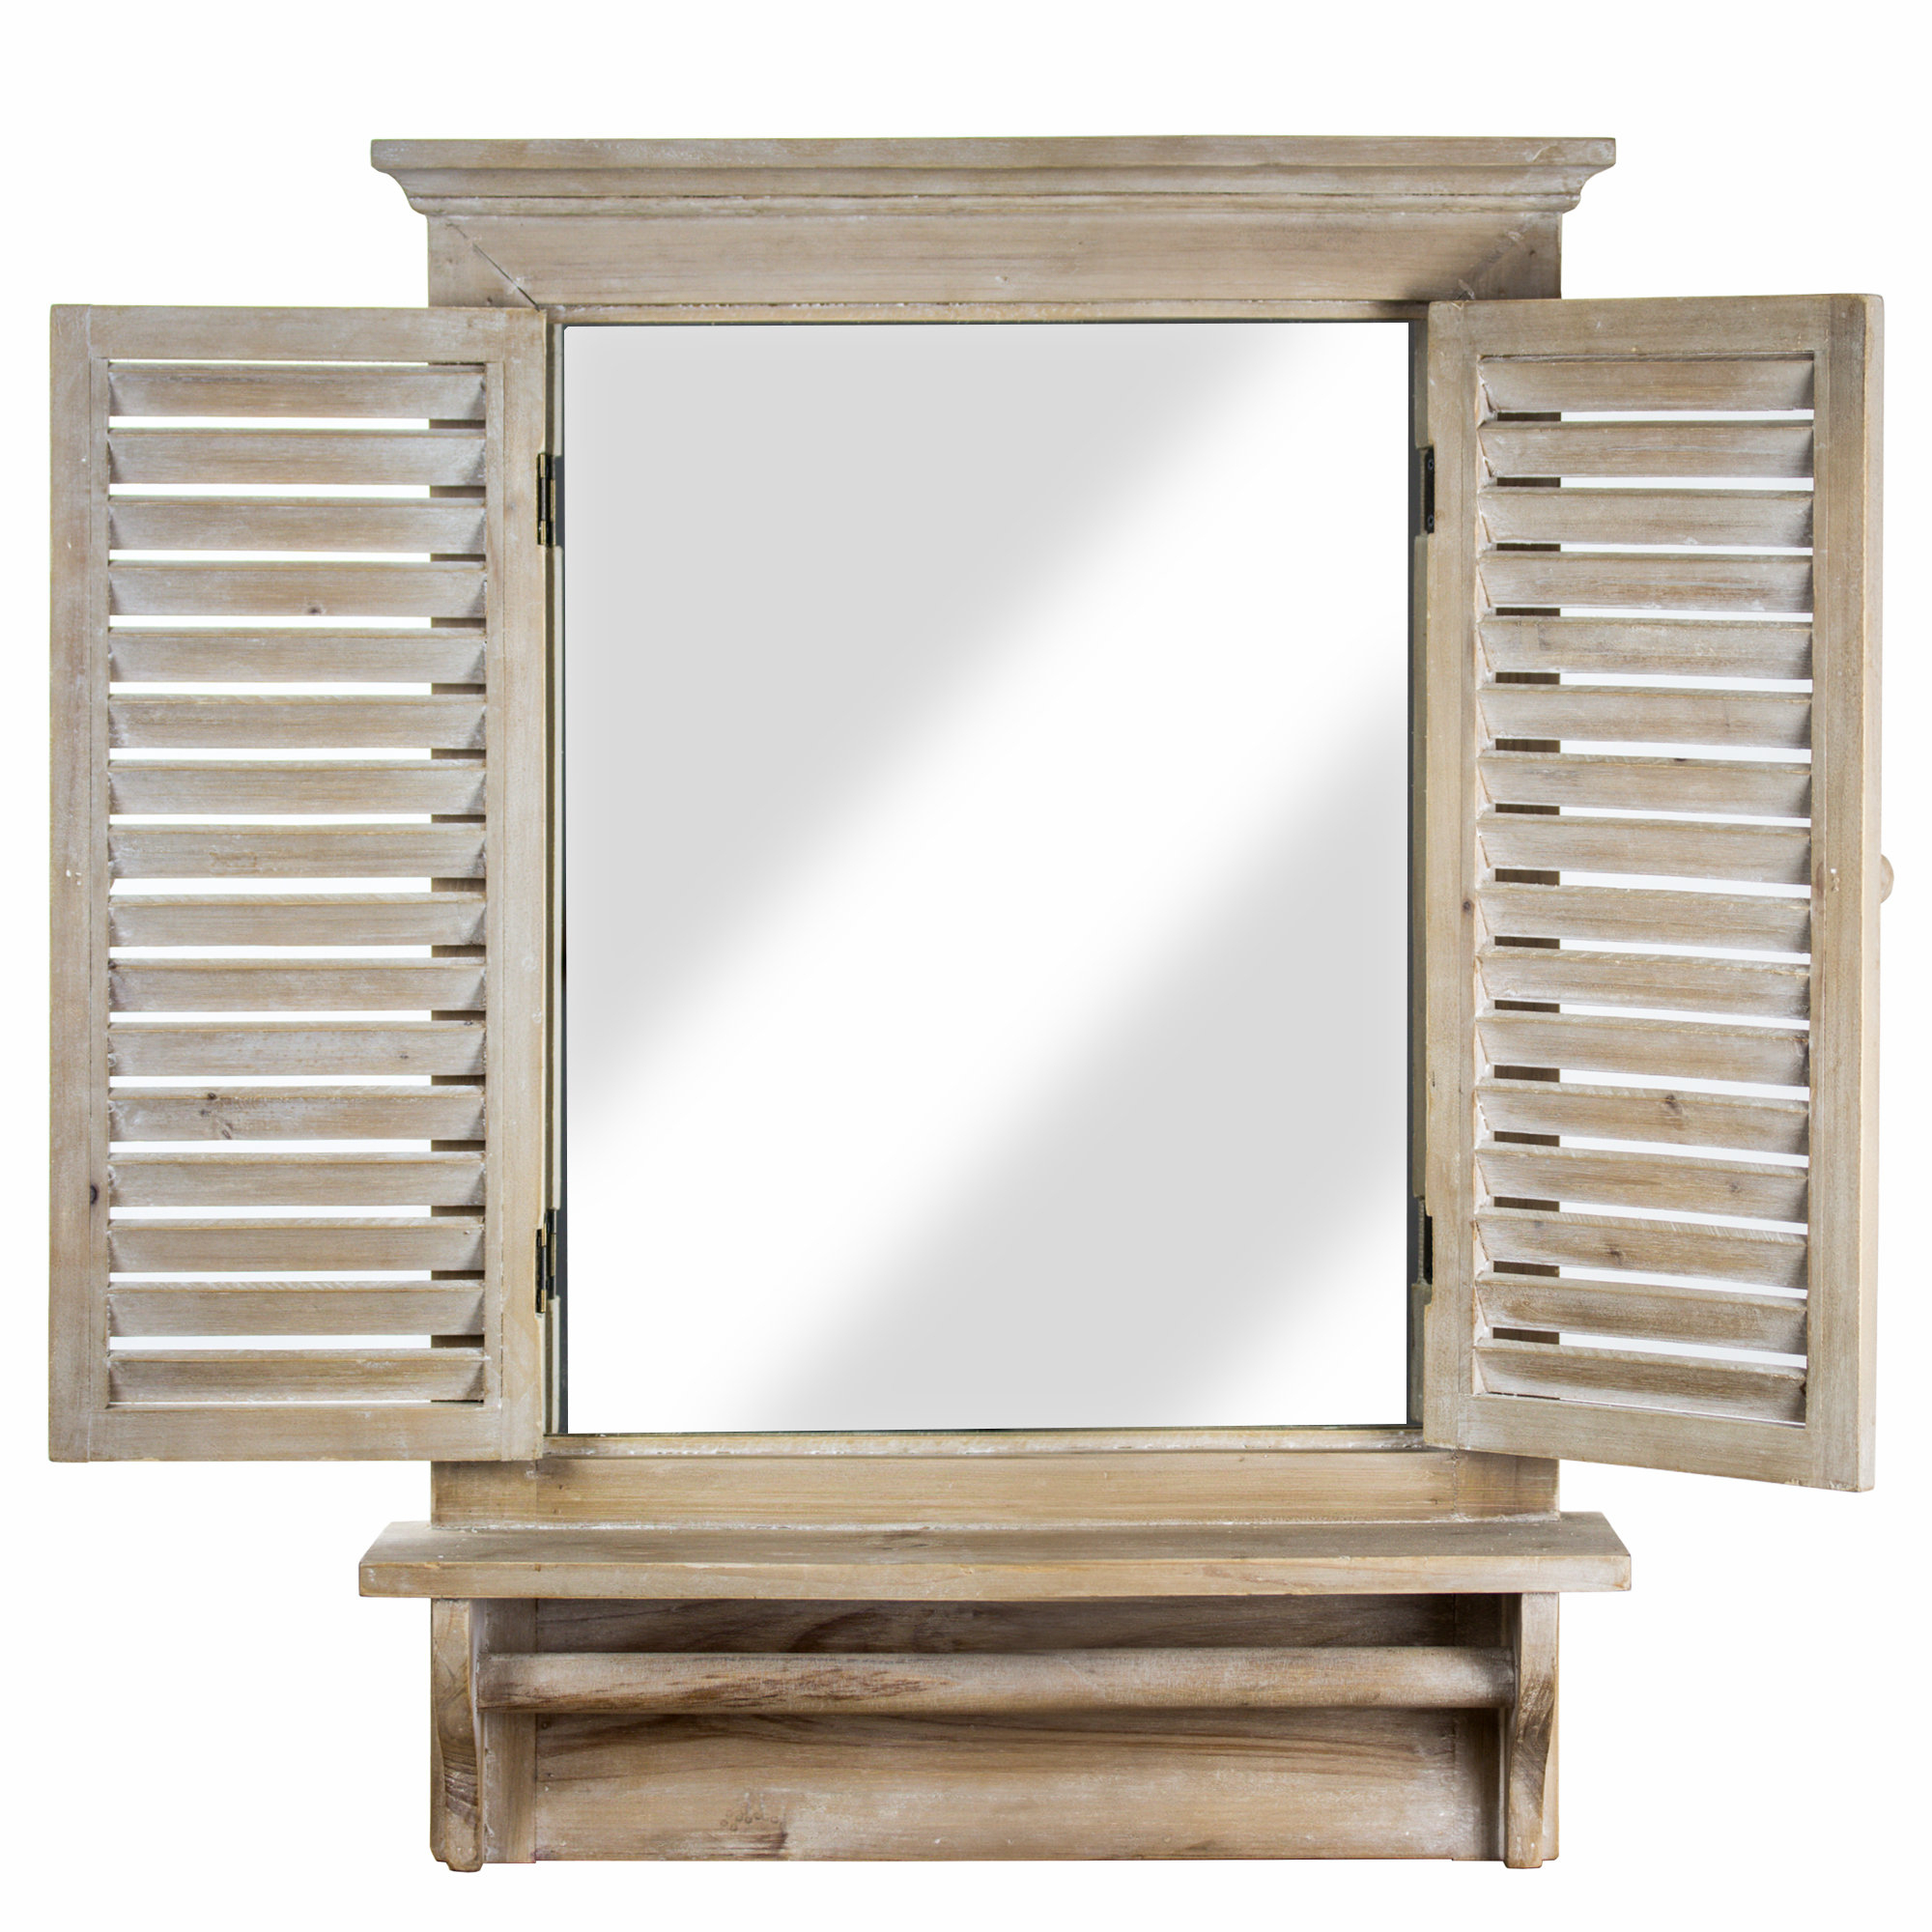 Shutter Window Hanging Wall Decor With 2019 Ophelia & Co (View 15 of 20)